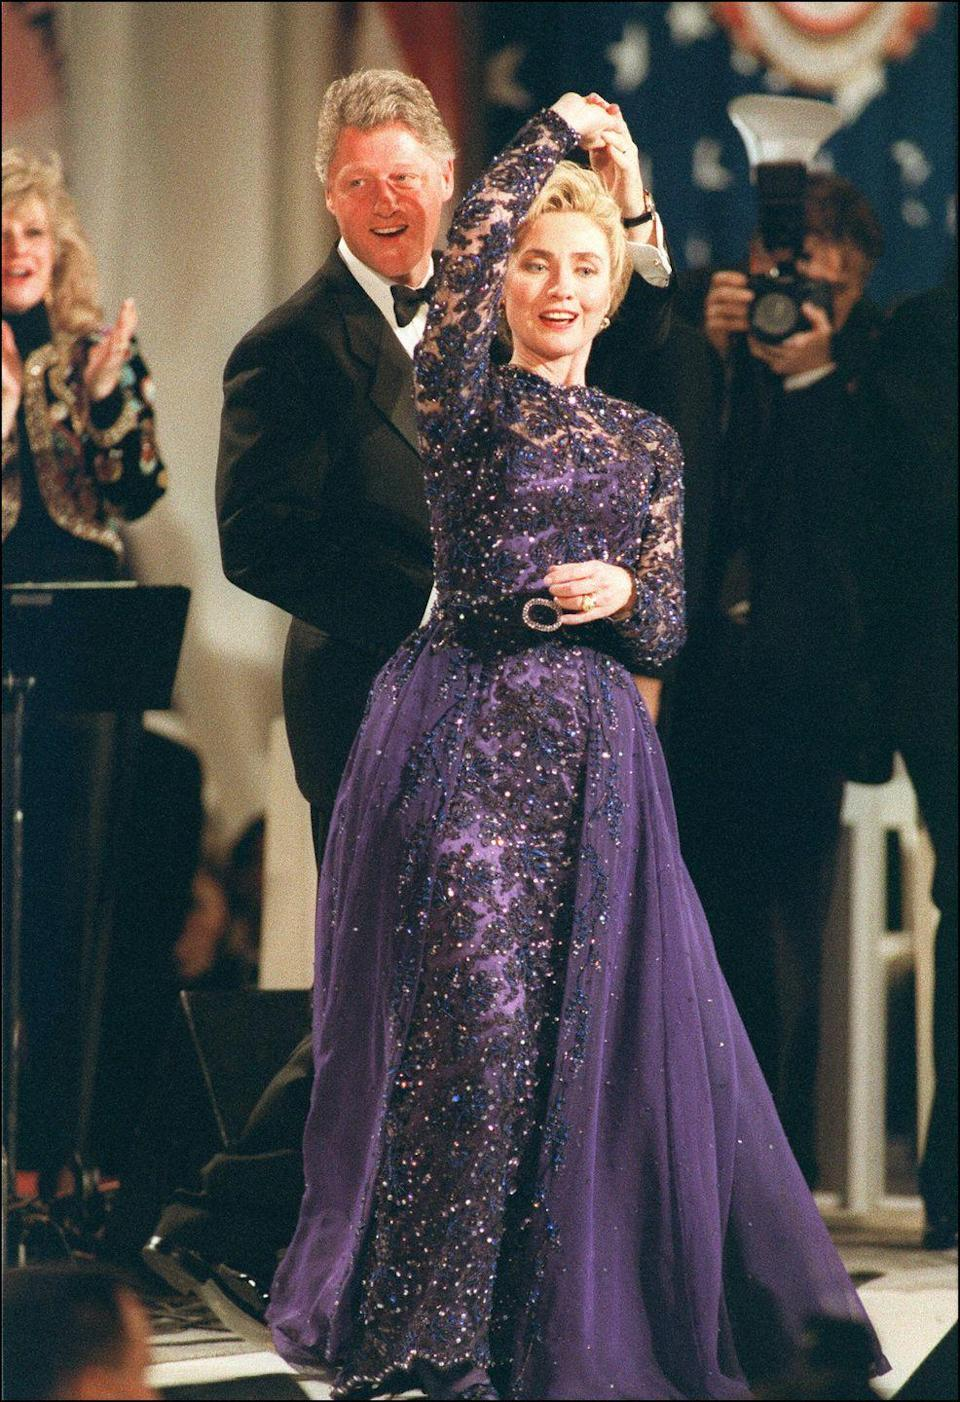 """<p>President Bill Clinton gives Hillary Clinton a twirl as they share the first dance at his inaugural ball. The First Lady looked lovely in a purple beaded ball gown with a tulle skirt that was <a href=""""https://www.si.edu/newsdesk/photos/hillary-clintons-inaugural-gown-1993"""" rel=""""nofollow noopener"""" target=""""_blank"""" data-ylk=""""slk:designed by Sarah Phillips"""" class=""""link rapid-noclick-resp"""">designed by Sarah Phillips</a>. </p>"""